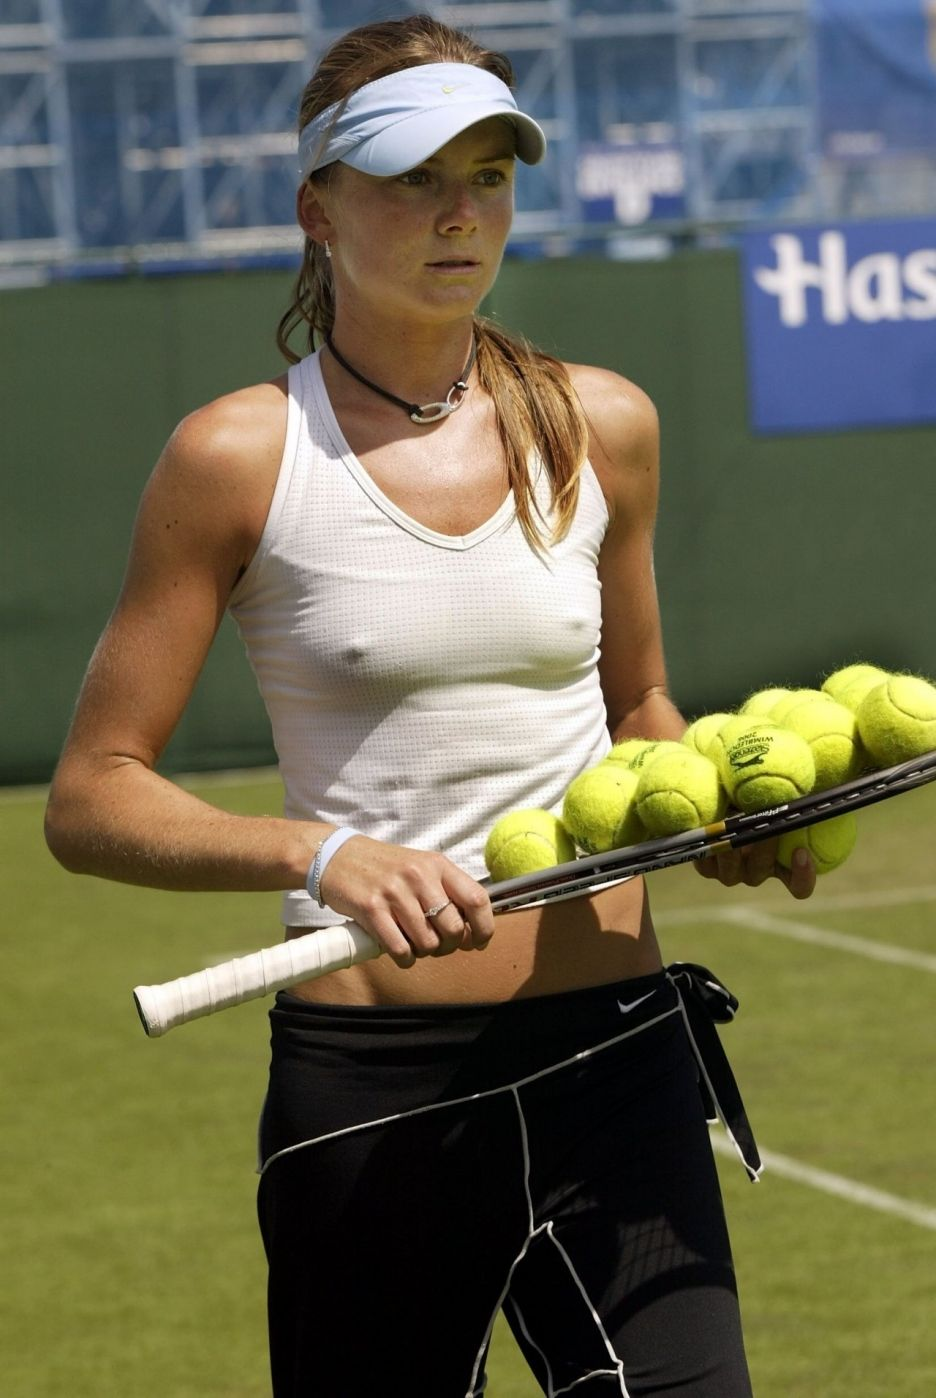 Daniela Hantuchova Tennis Players Female Tennis Players Tennis Professional